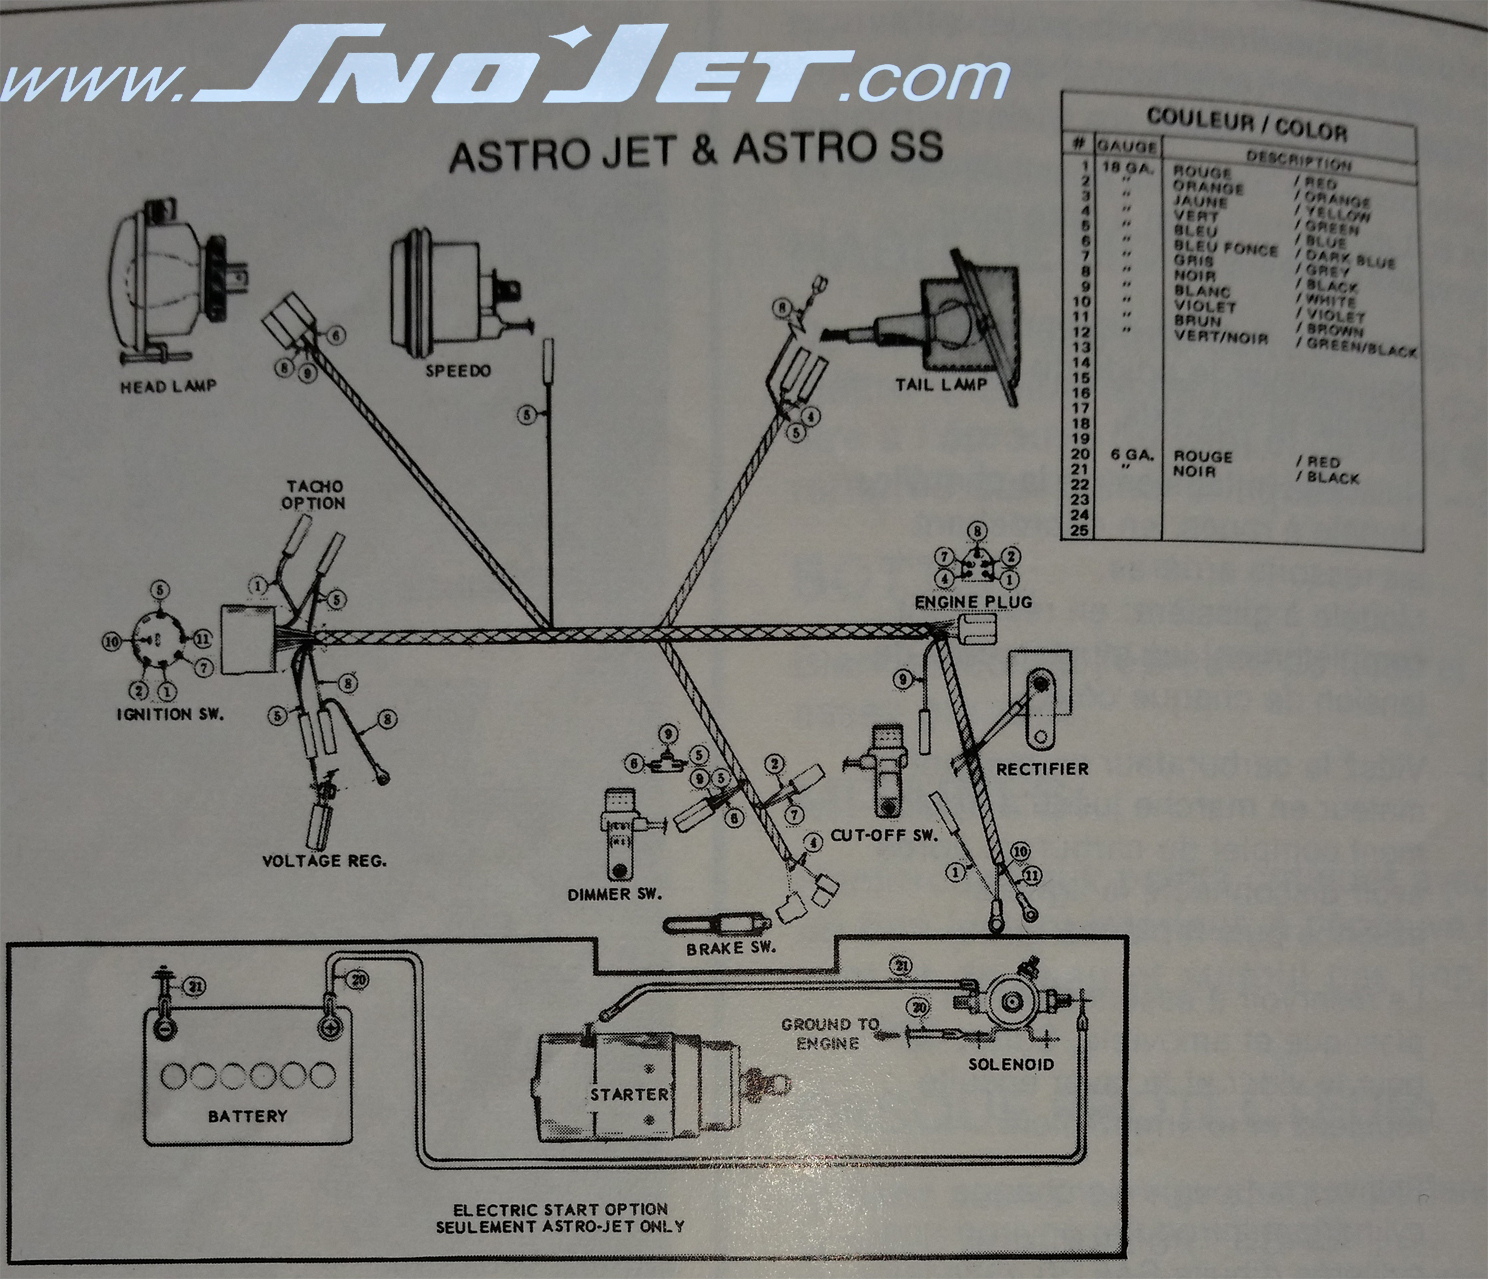 Arctic Cat Jet Ski Wiring Diagrams 1974 Astro And Ss